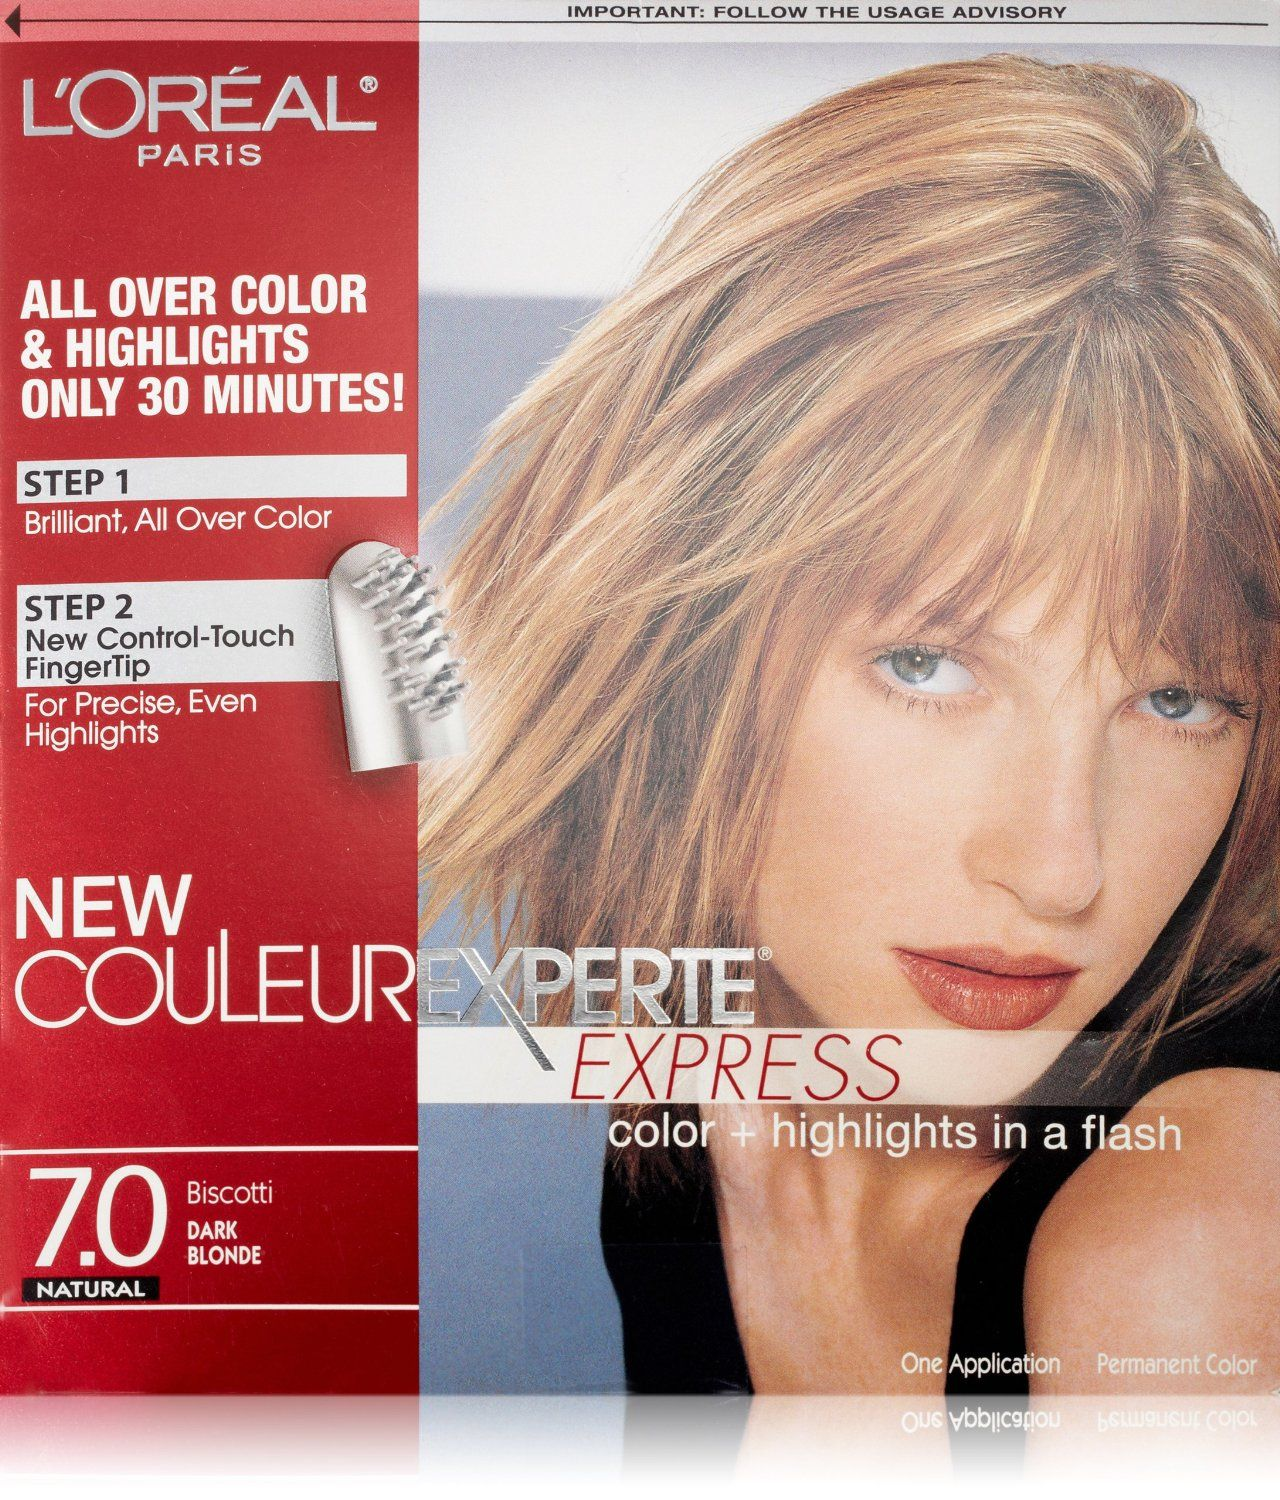 Couleur Experte Medium Blonde Toasted Coconut